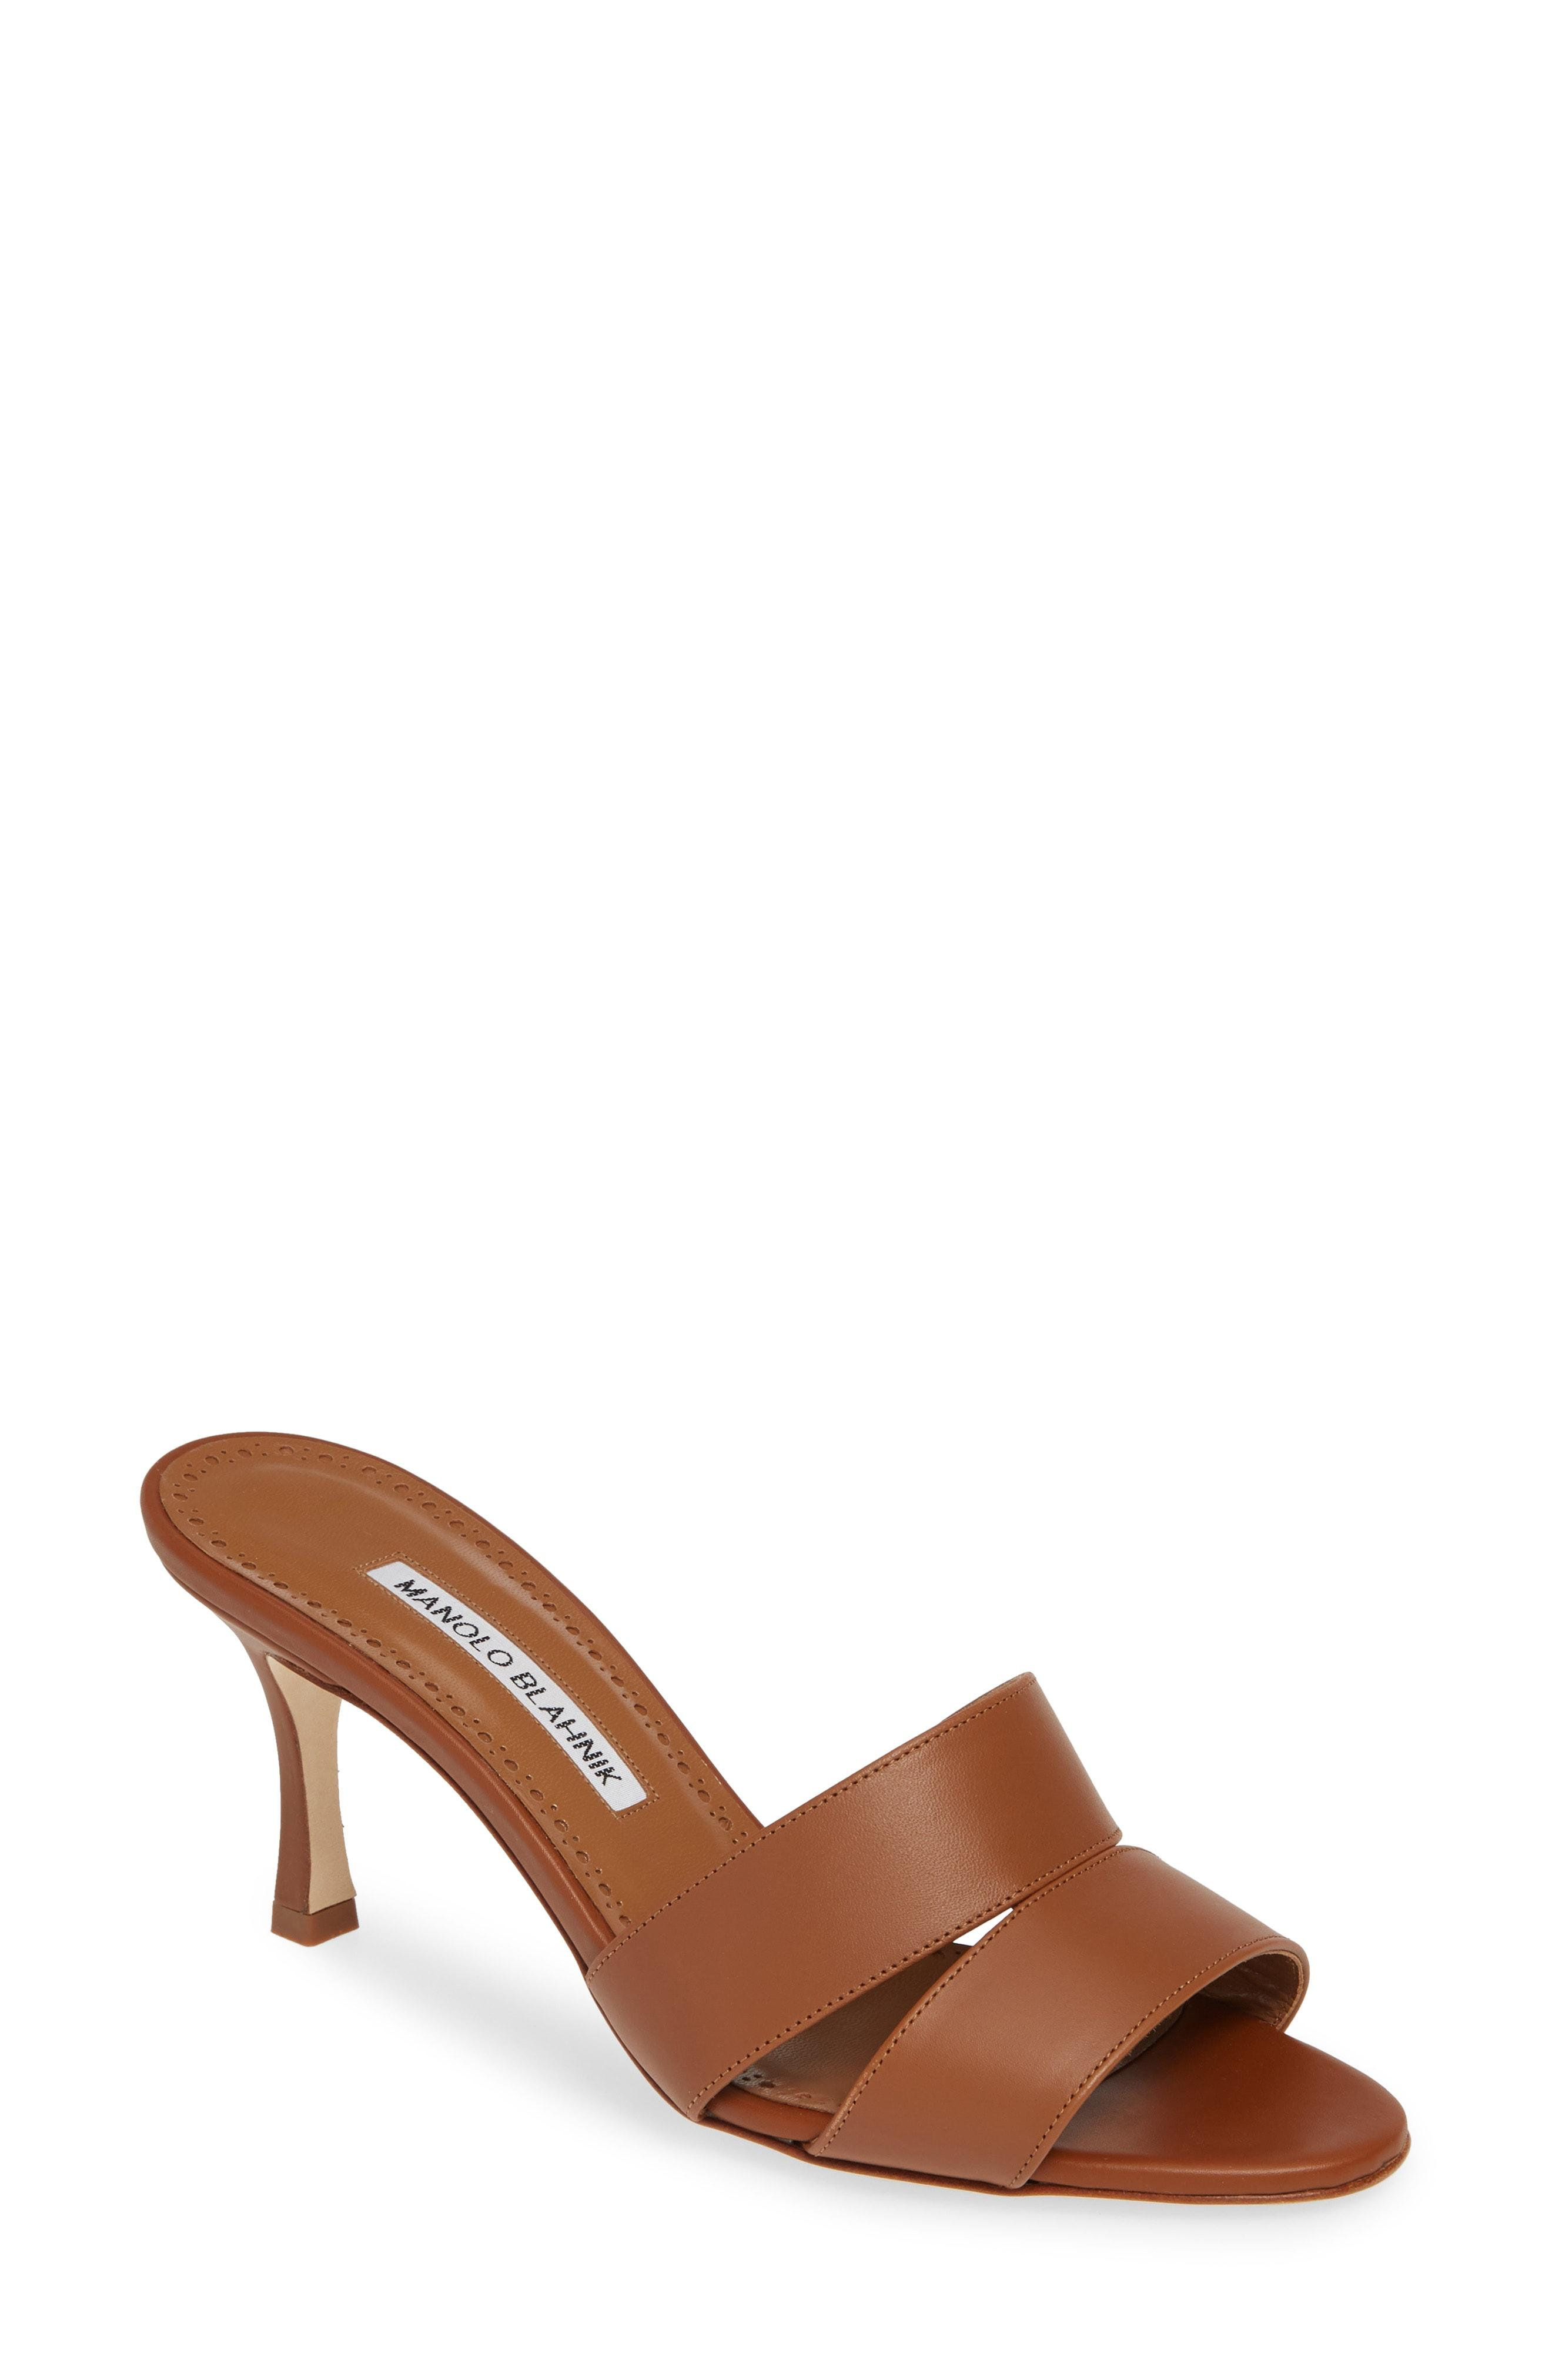 adc54b24cda6 Lyst - Manolo Blahnik Iacopo Double Band Sandal in Brown